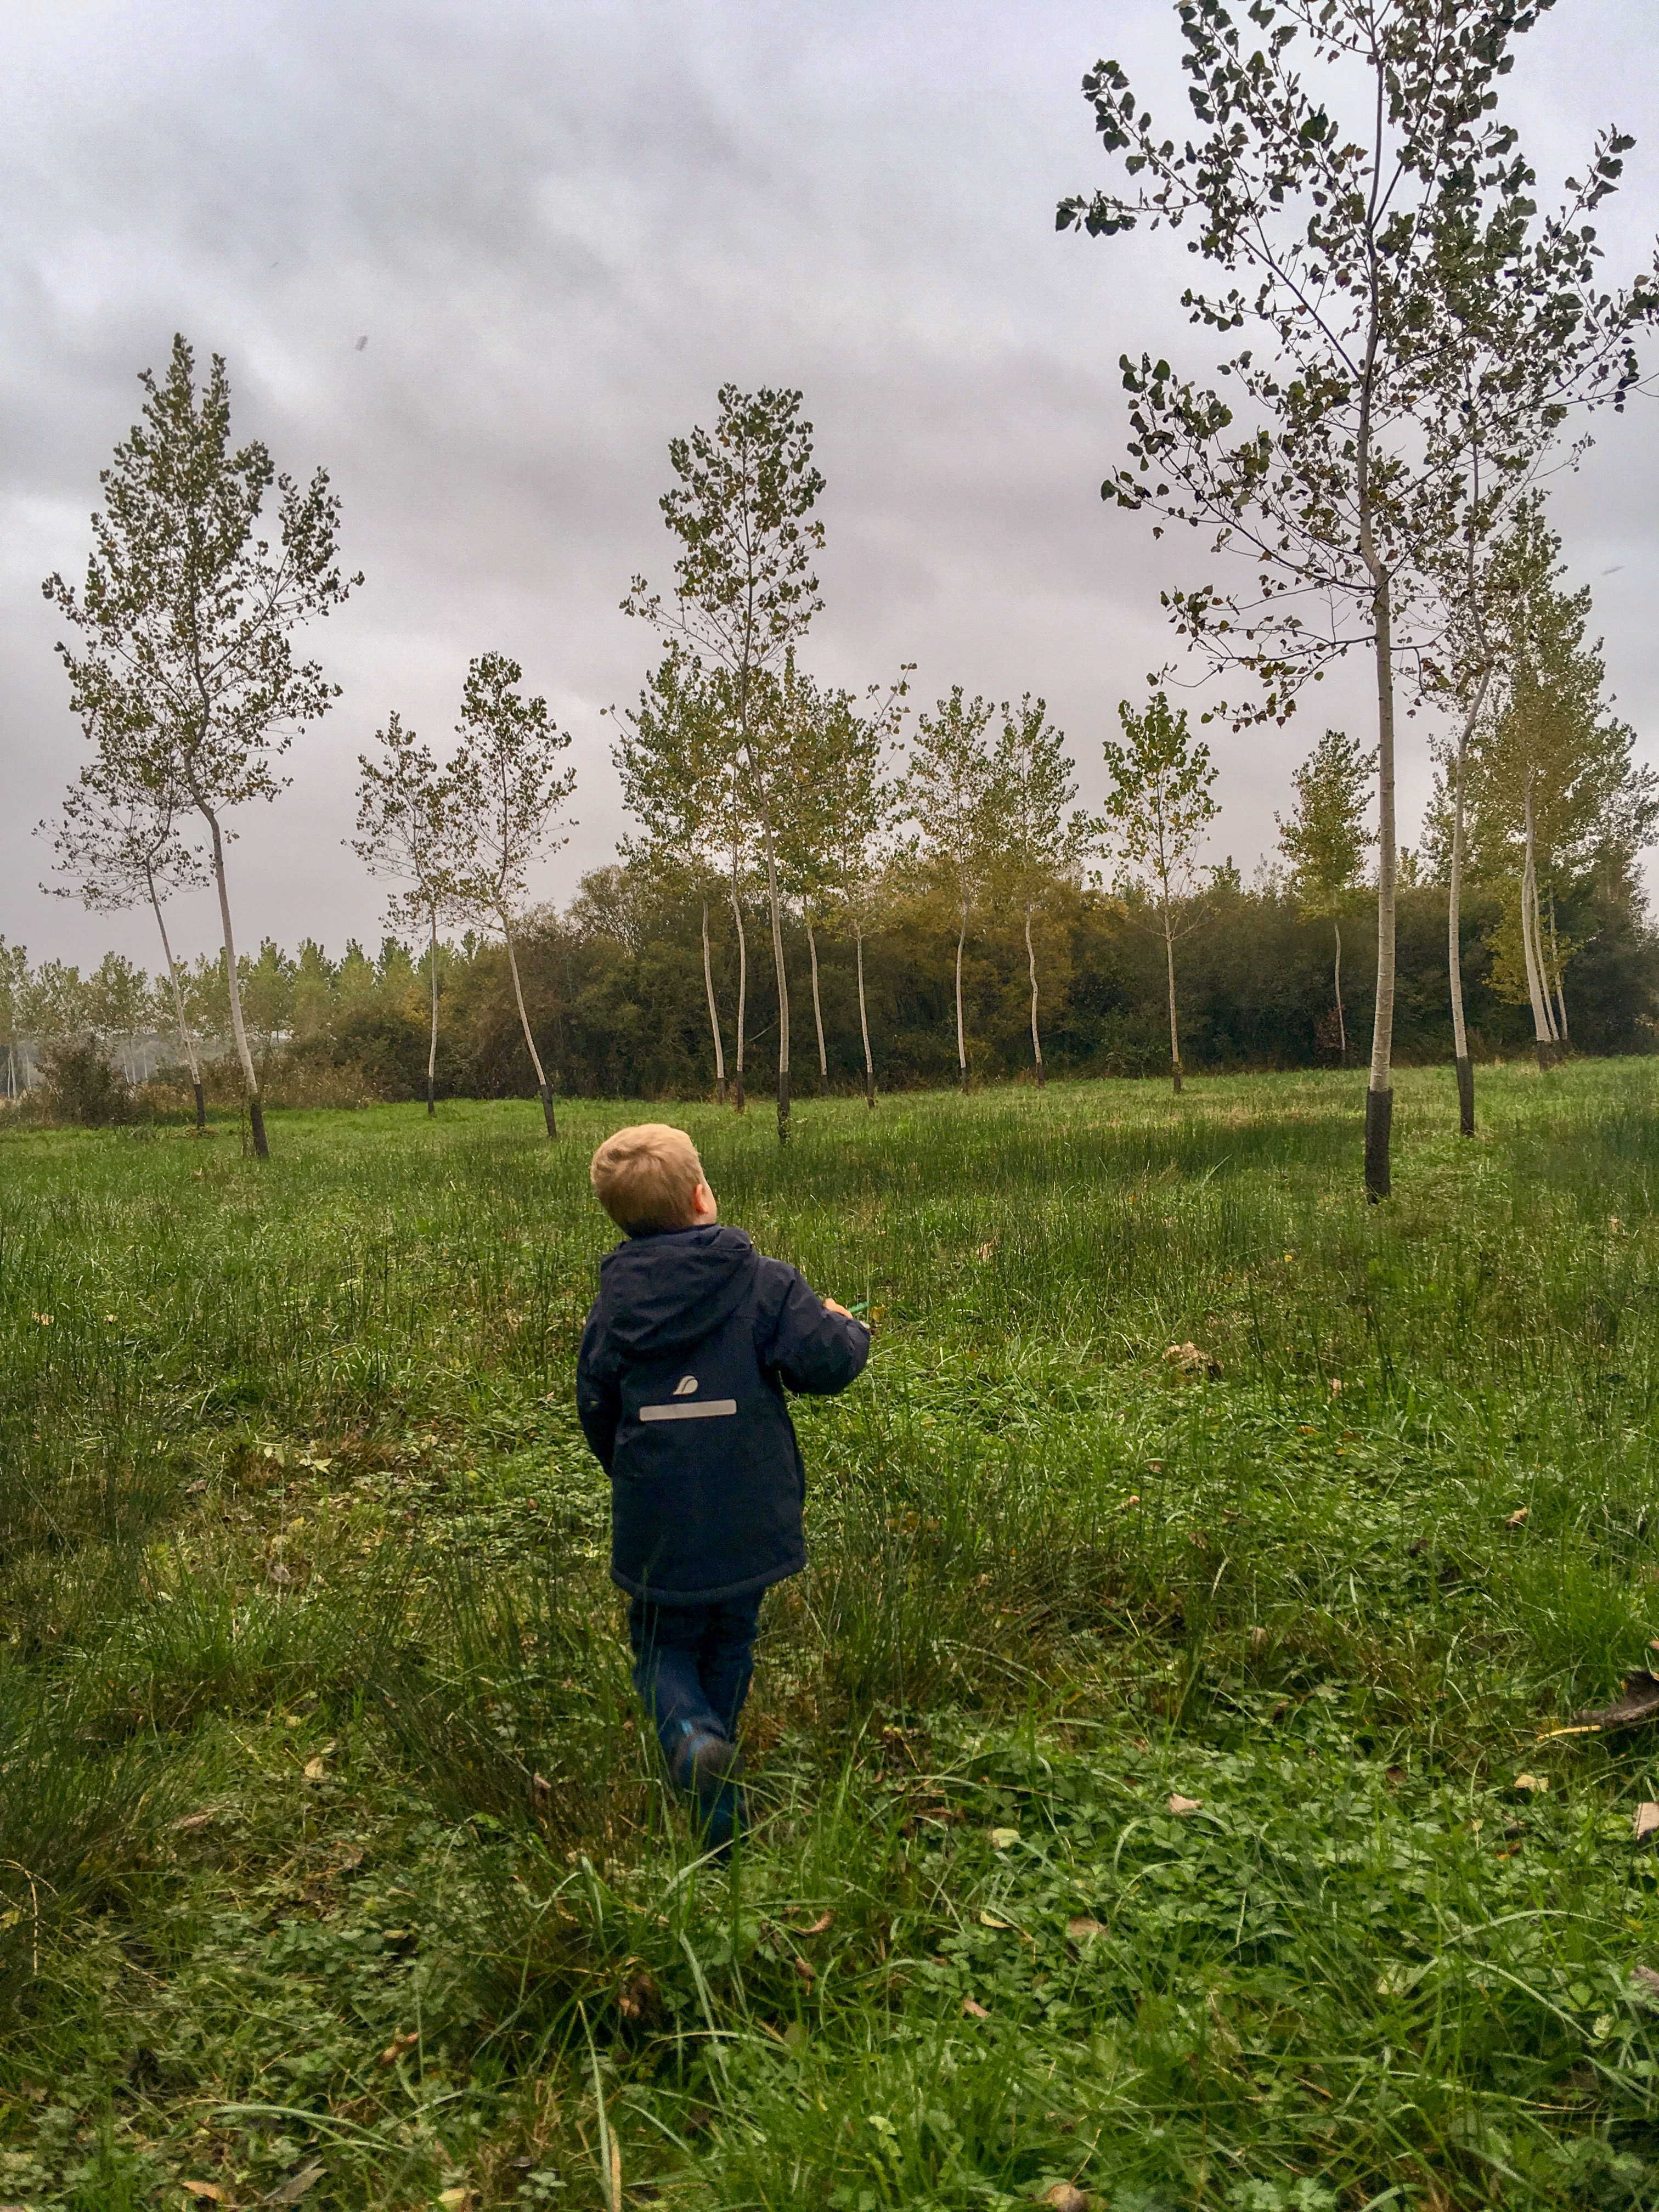 Lucas walking through a field looking up into the trees